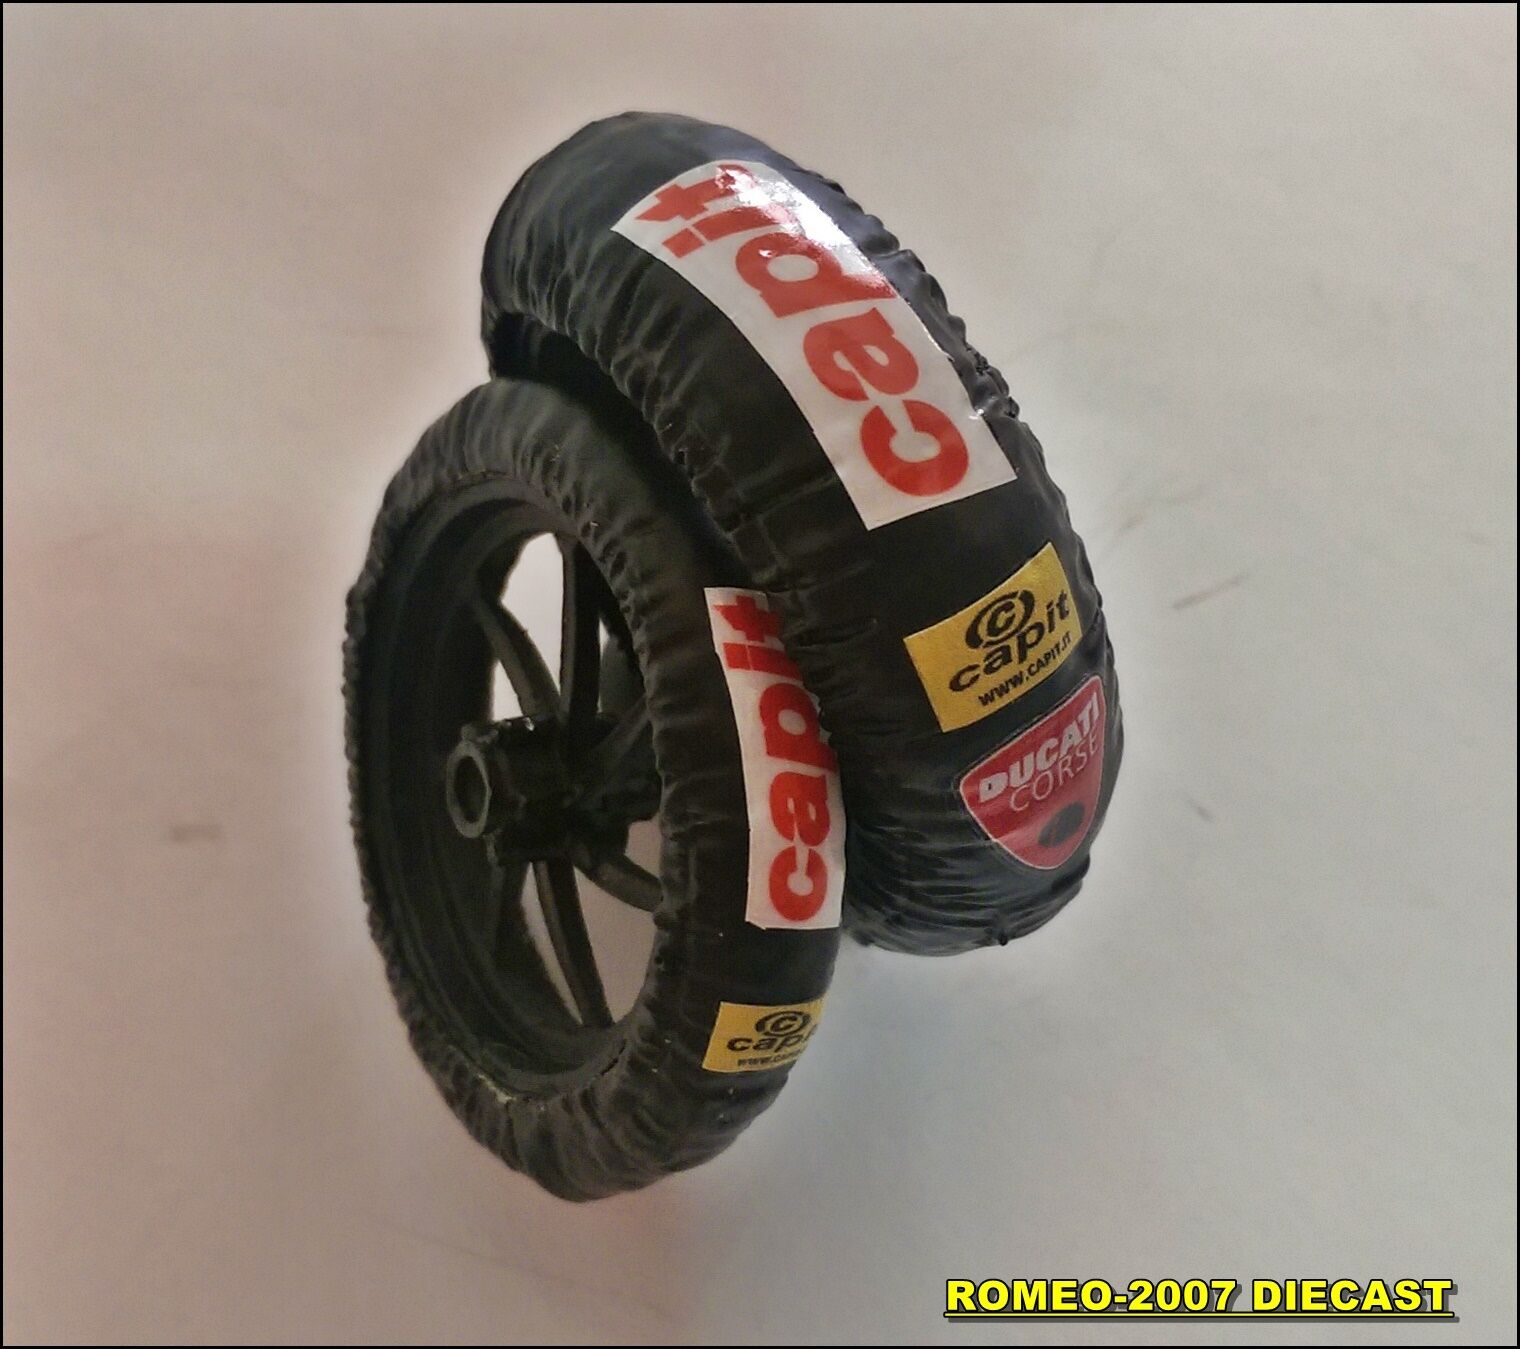 1 12 Tire Warmers Termocoperte Valentino Rossi Ducati GP 2011 Set to minichamps